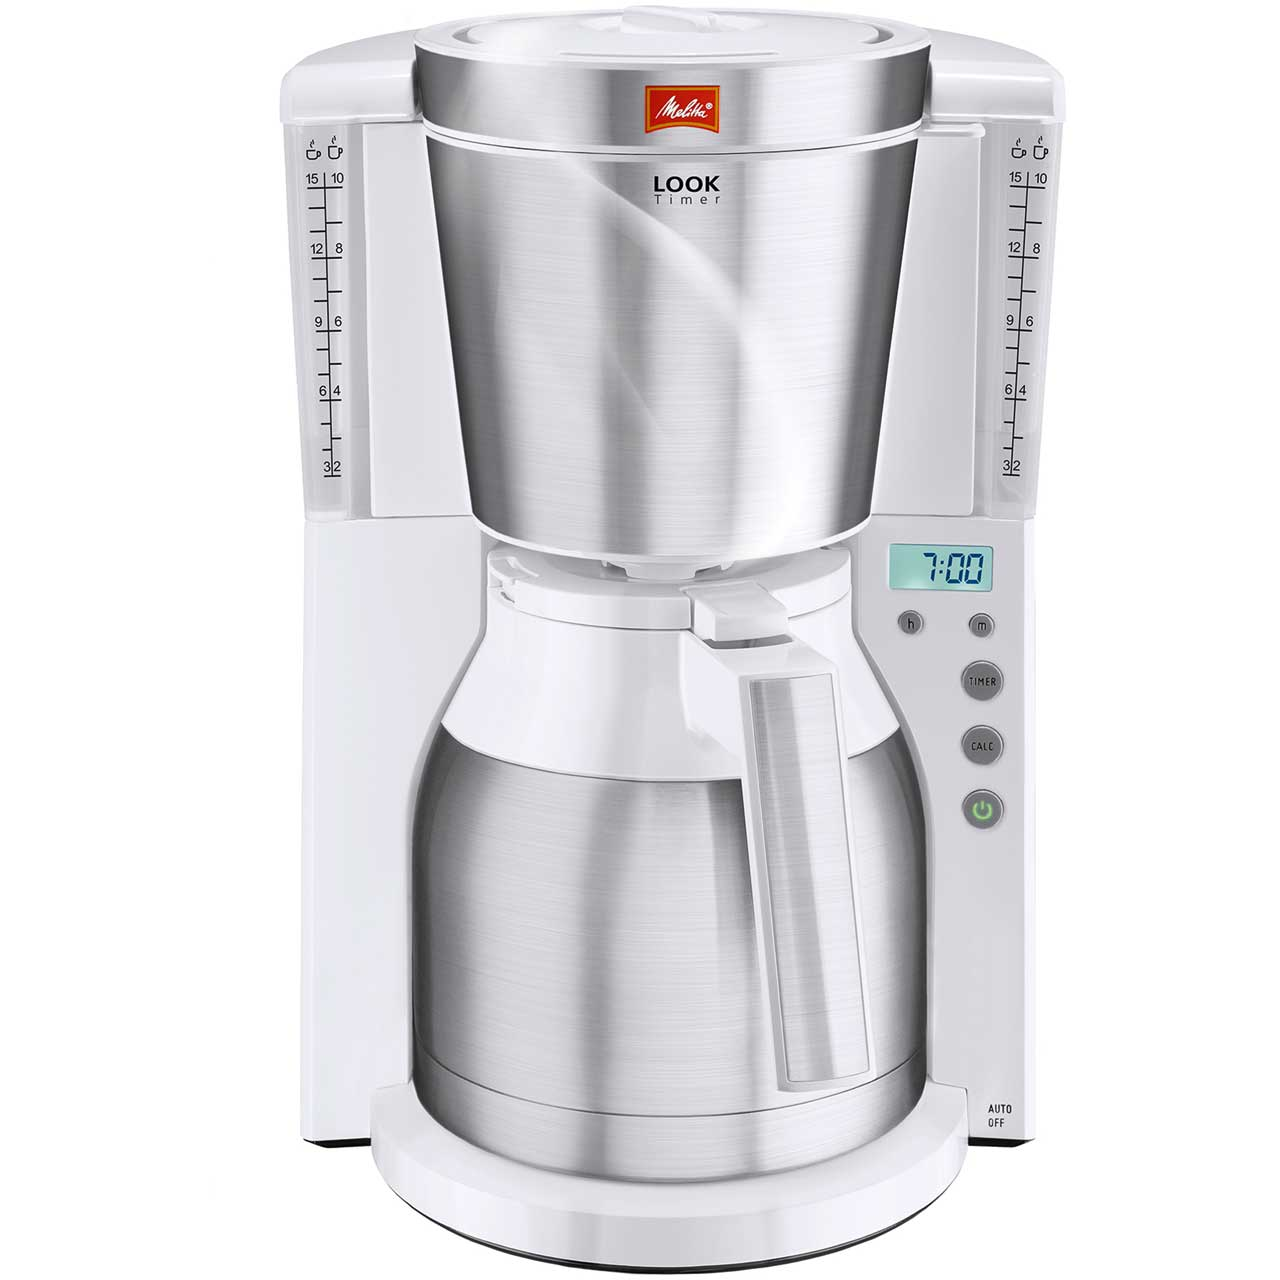 Melitta Look IV Therm Timer 6738037 Filter Coffee Machine with Timer - White